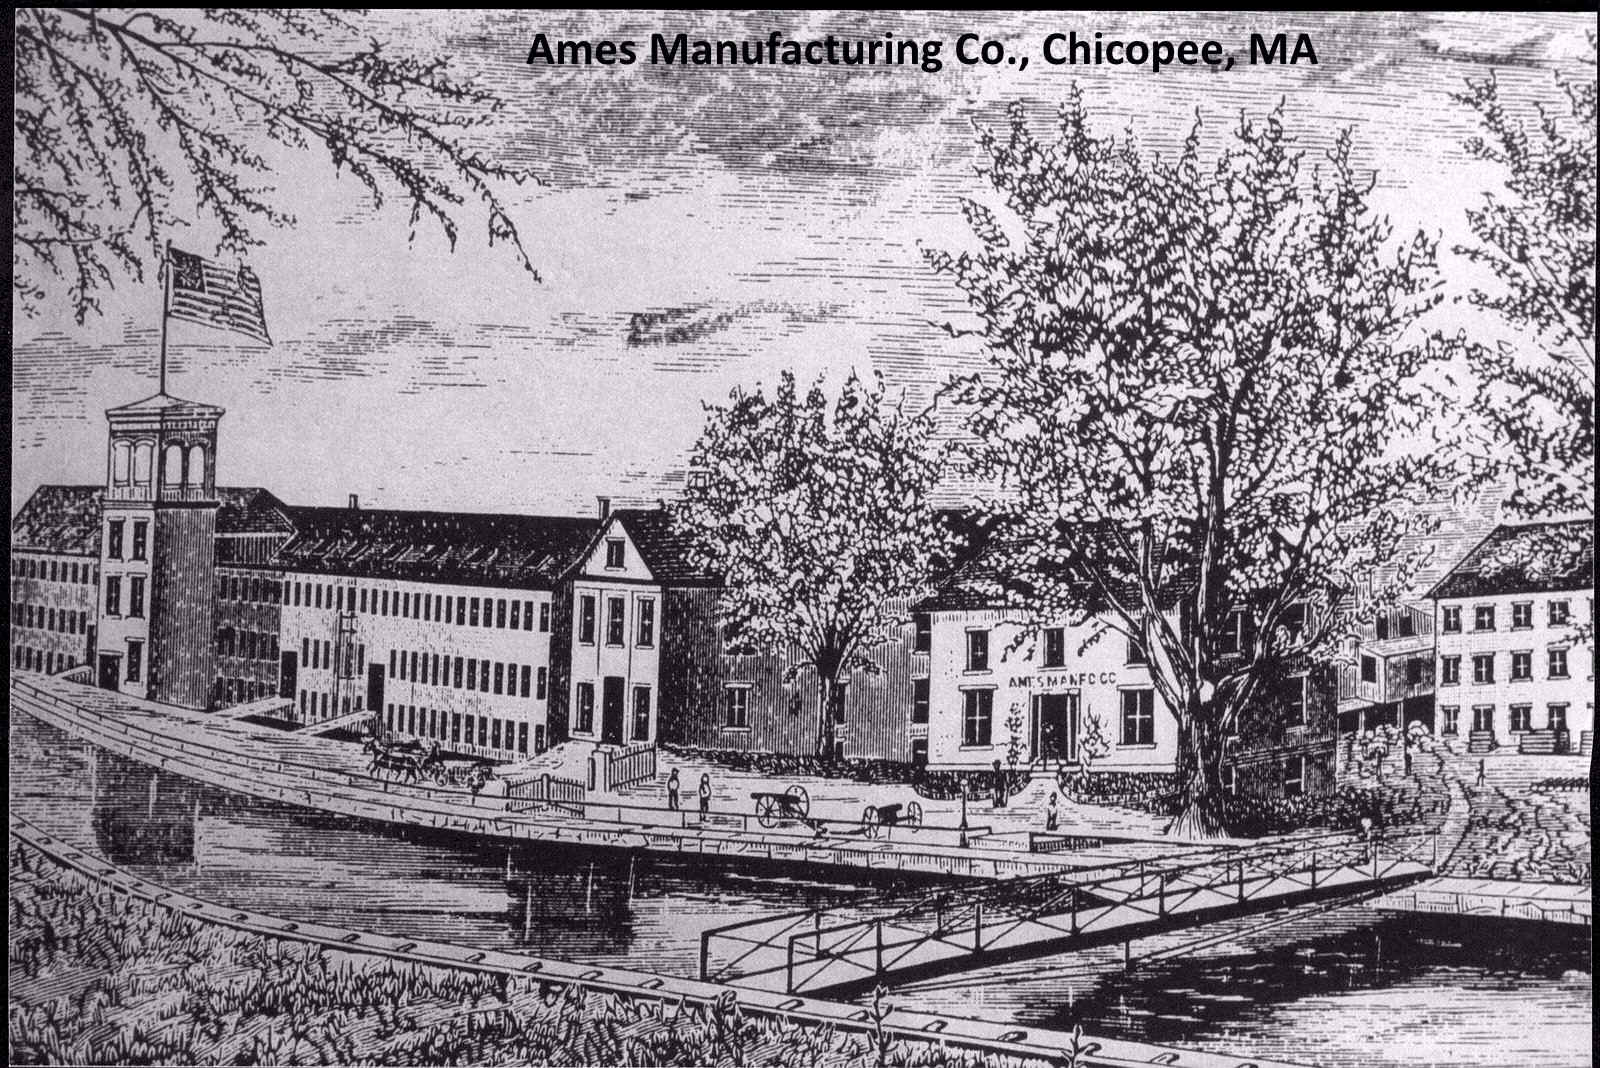 Ames Manufacturing Co., Chicopee, MA